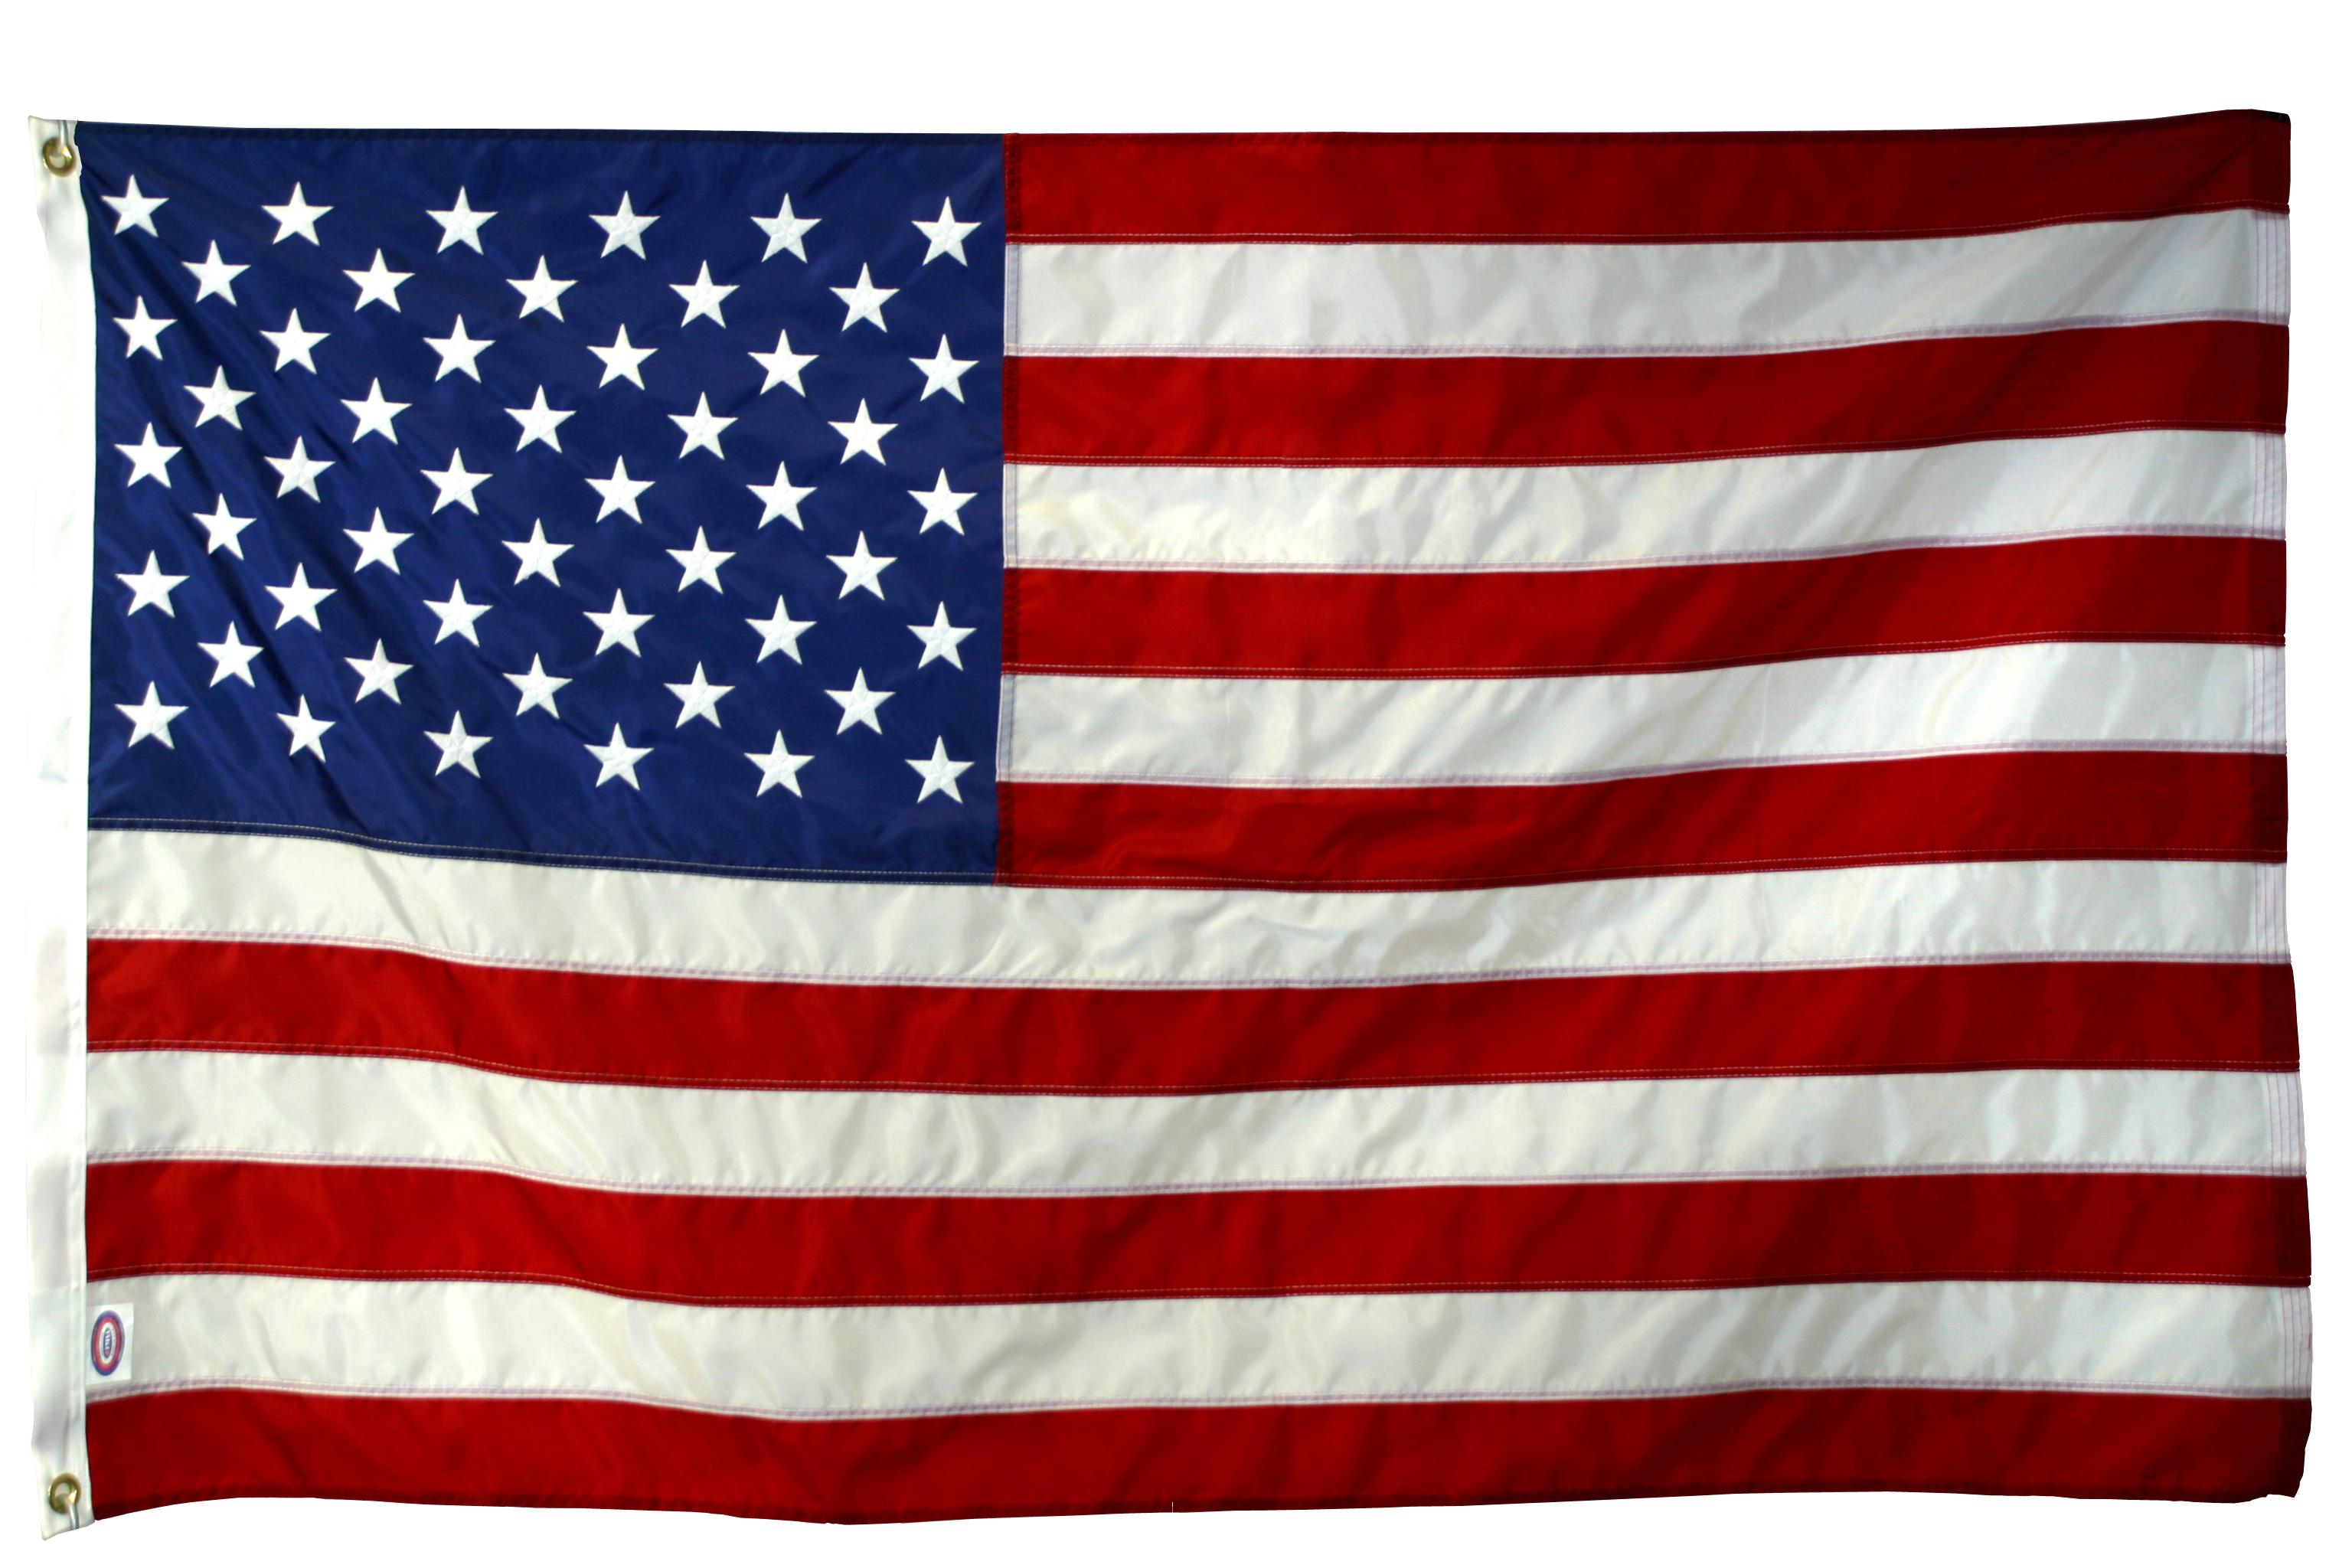 Free American Flag, Download Free Clip Art, Free Clip Art on.